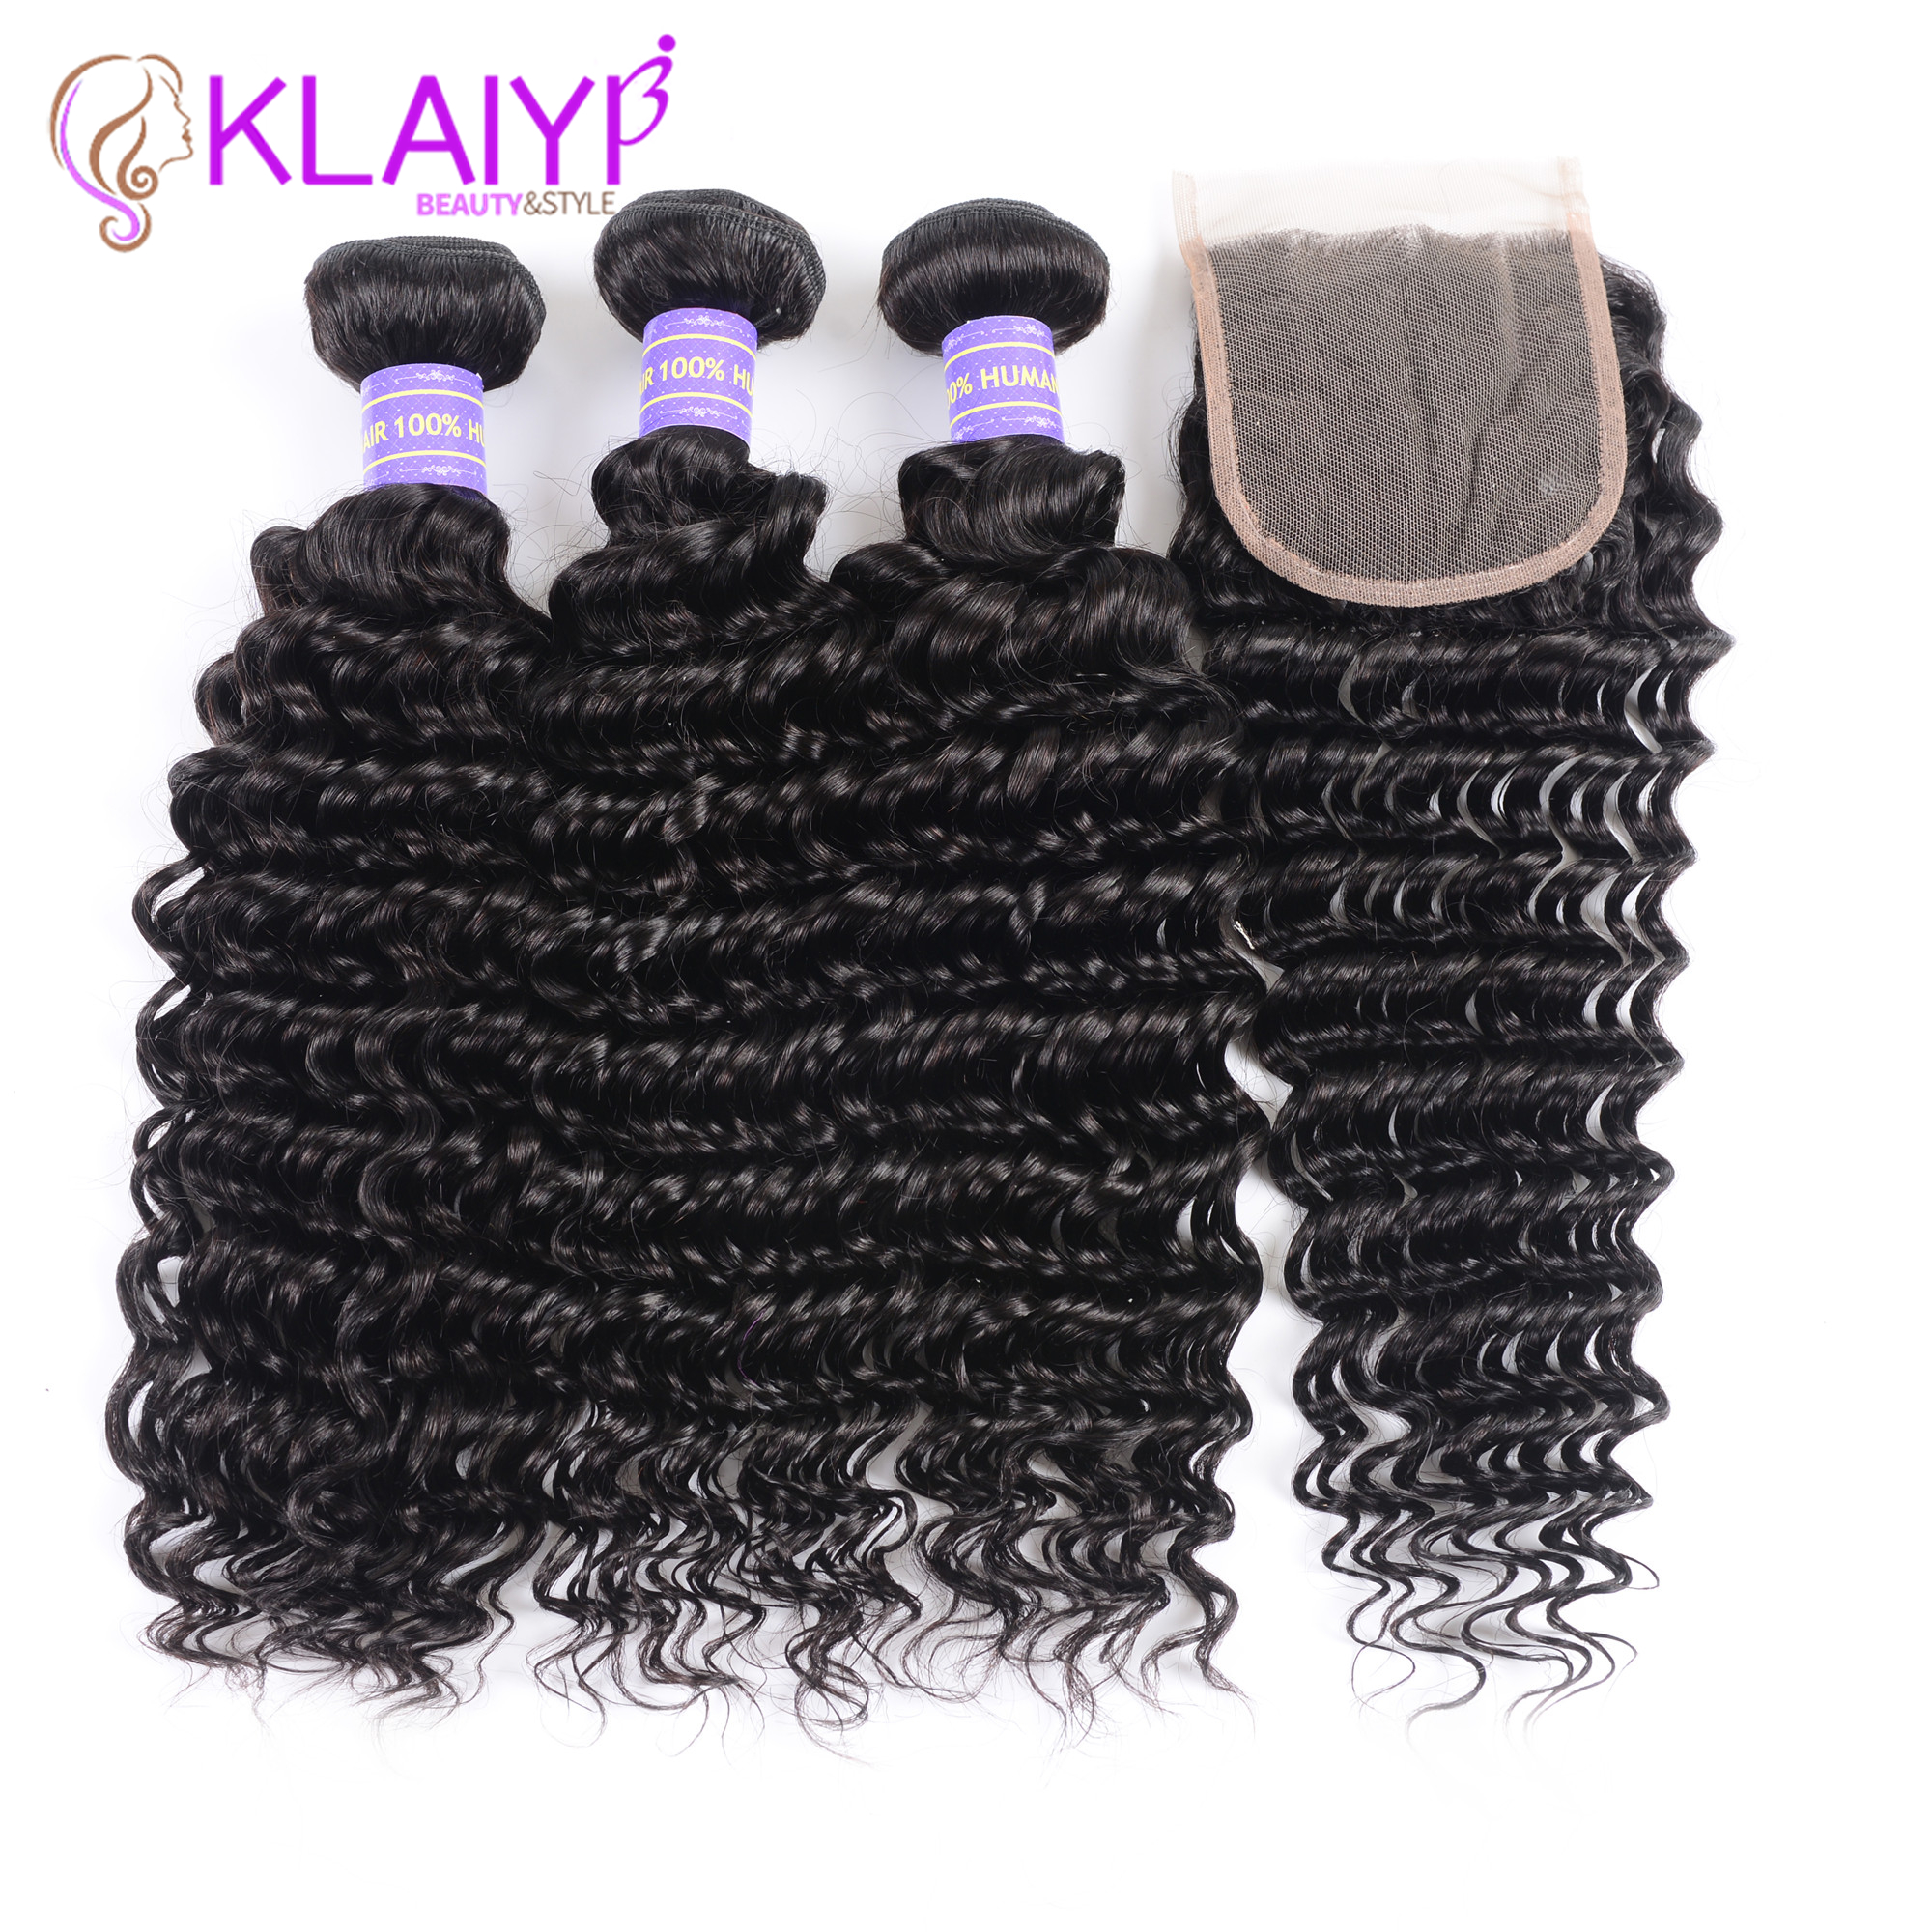 Klaiyi Hair Brazilian Deep Wave Bundles With Closure Free Part Human Hair Bundles With Closure Dark